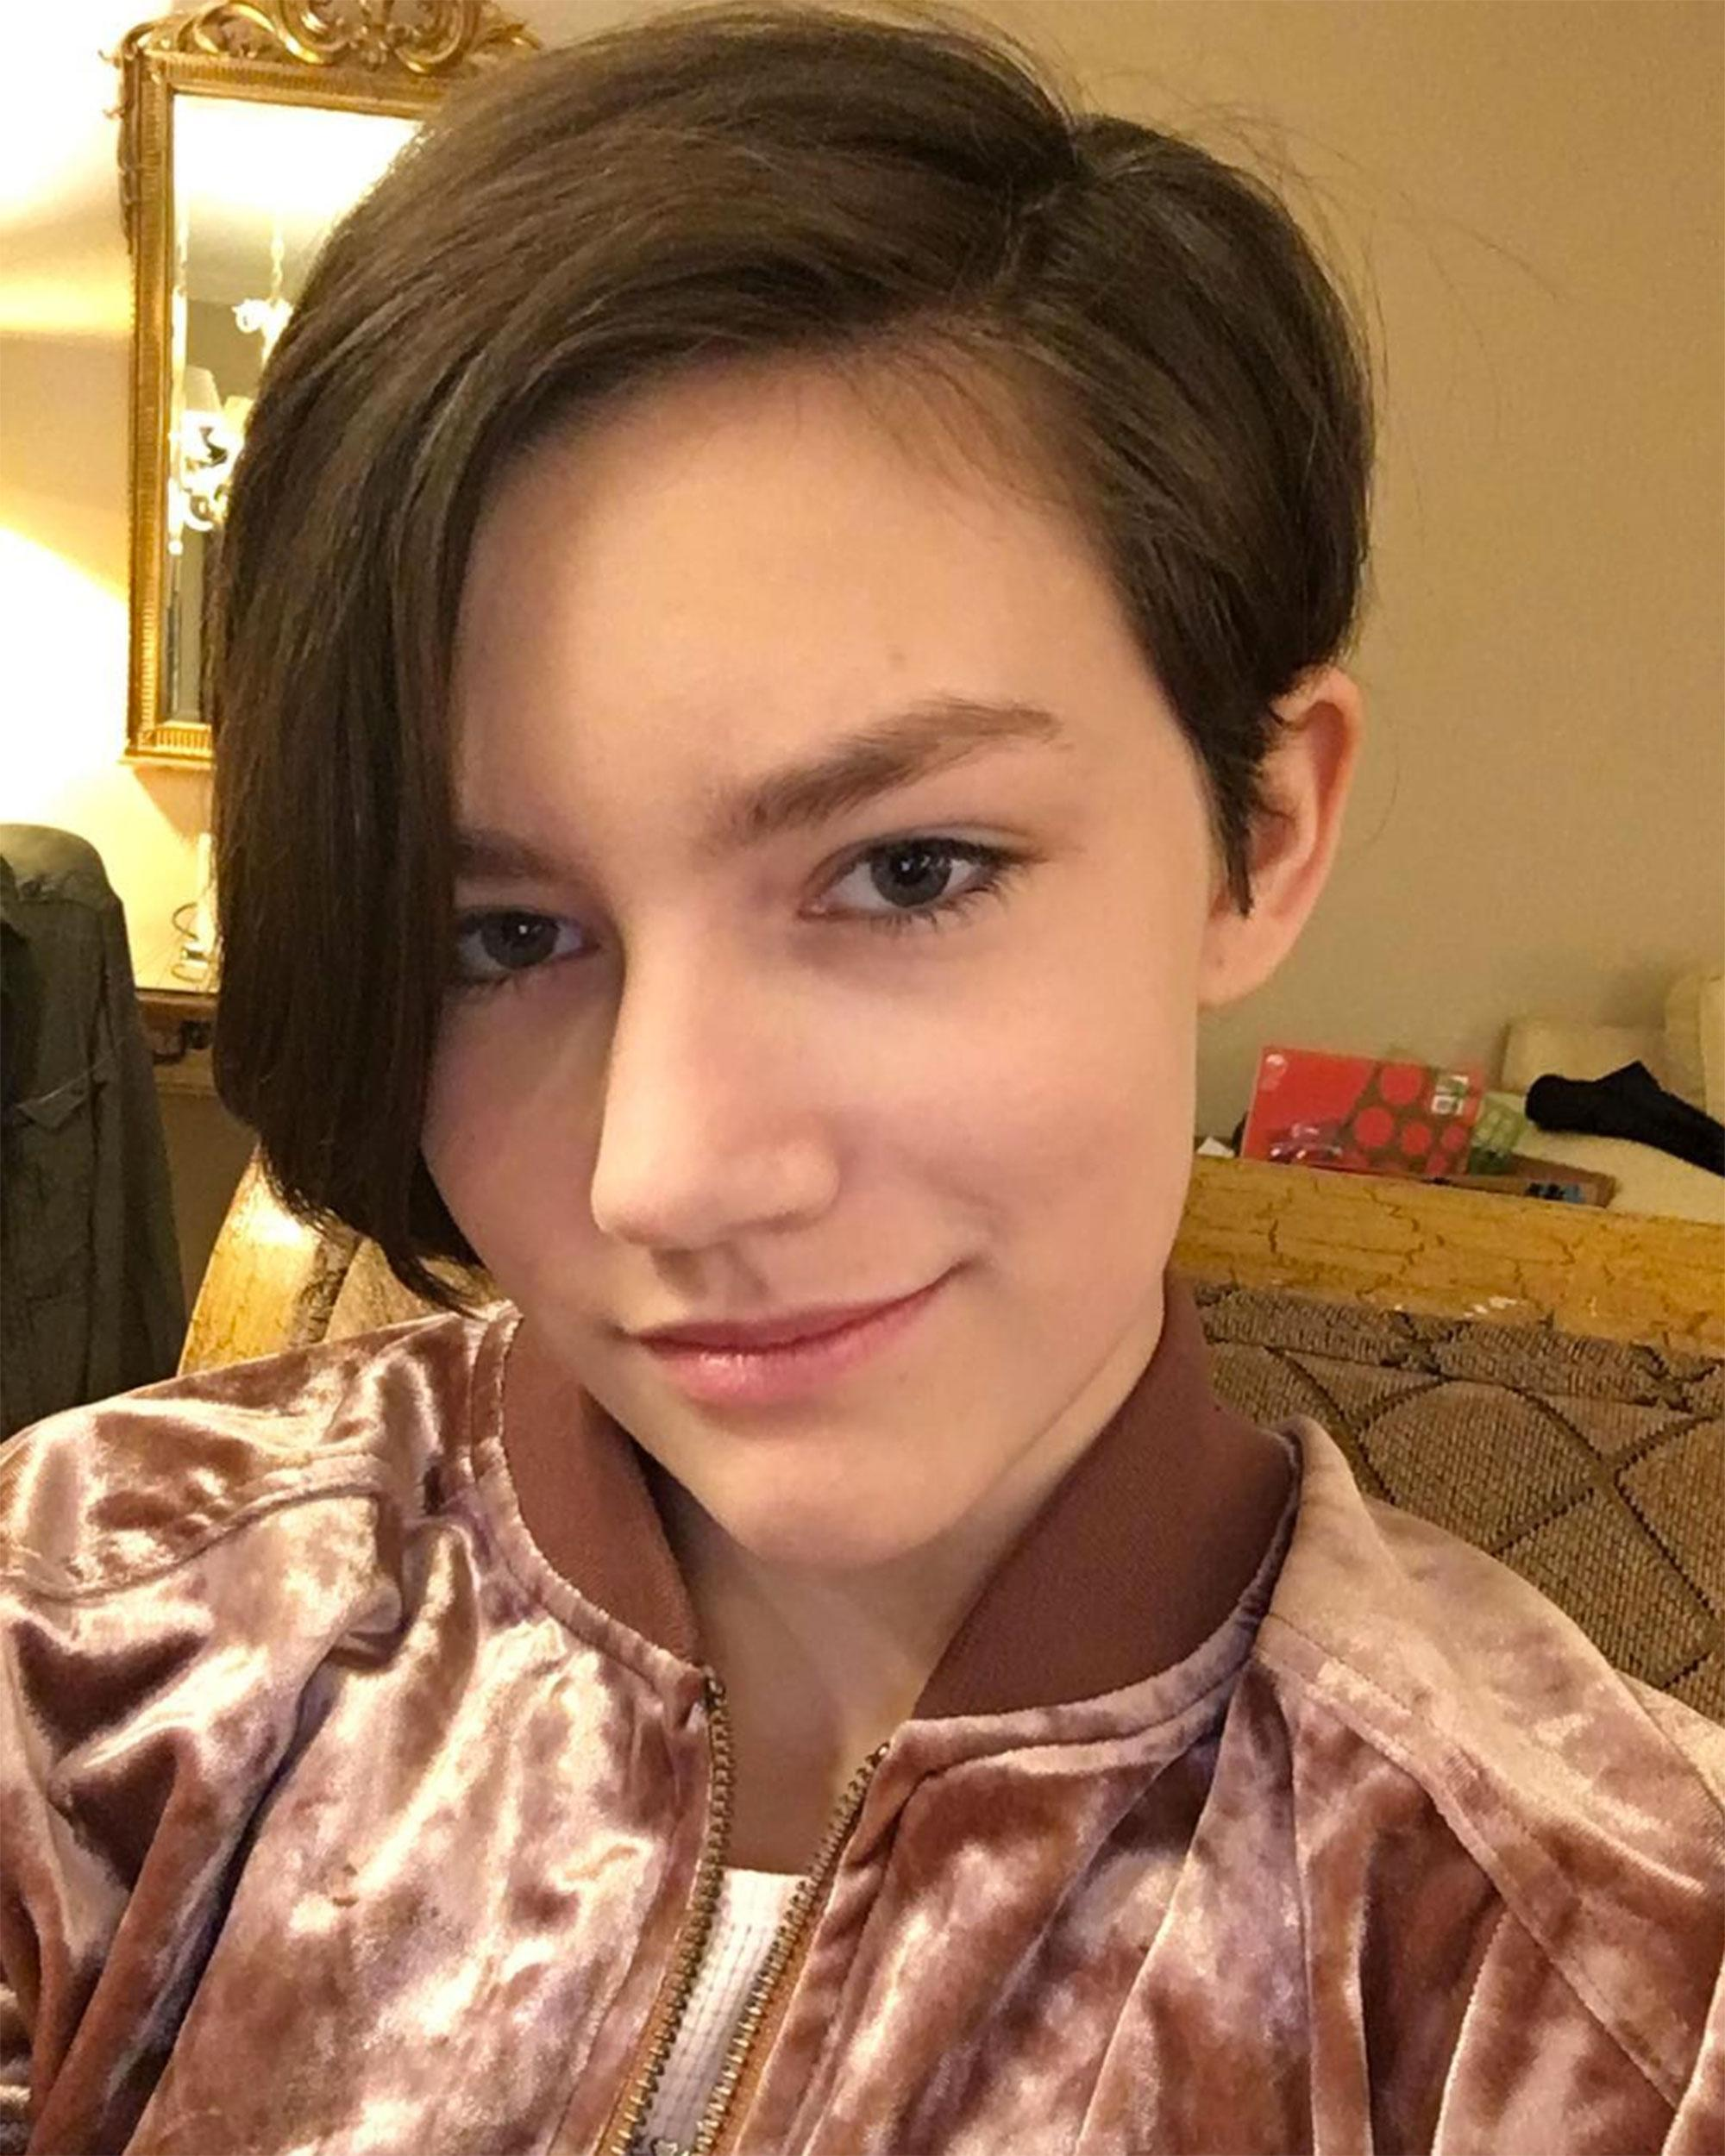 Alaskan Bush People S Rain Brown 14 Opens Up About Her Struggle